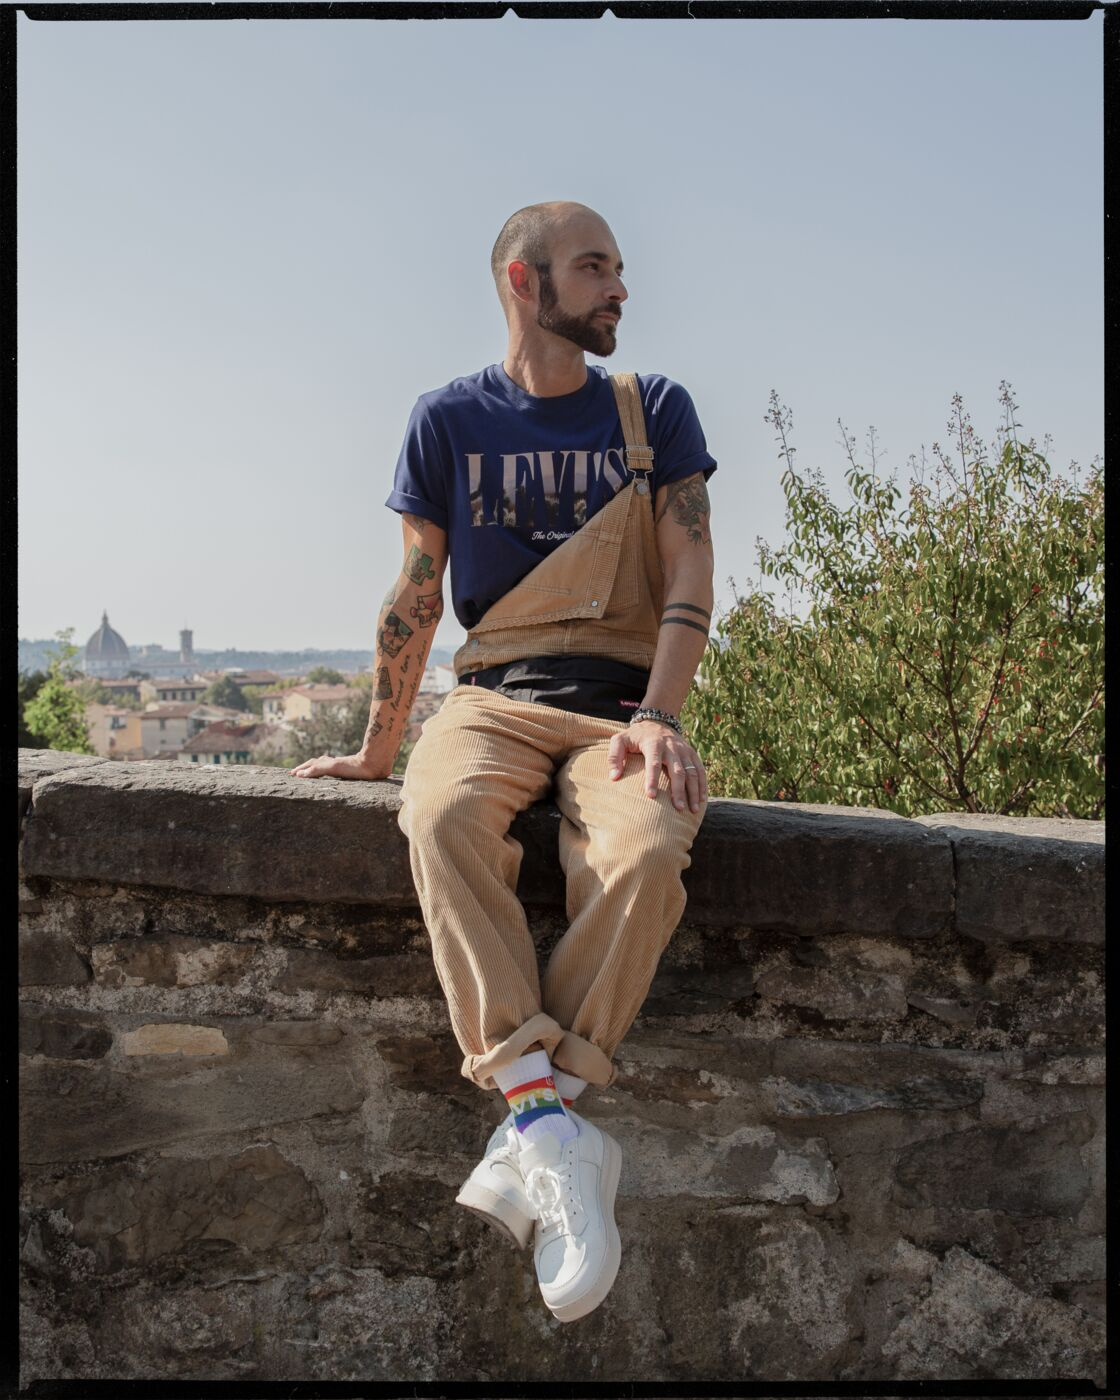 Lorenzo d'Ambrosca, manager du magasin Levi's à Florence, Italie porte la collection Unlabeled